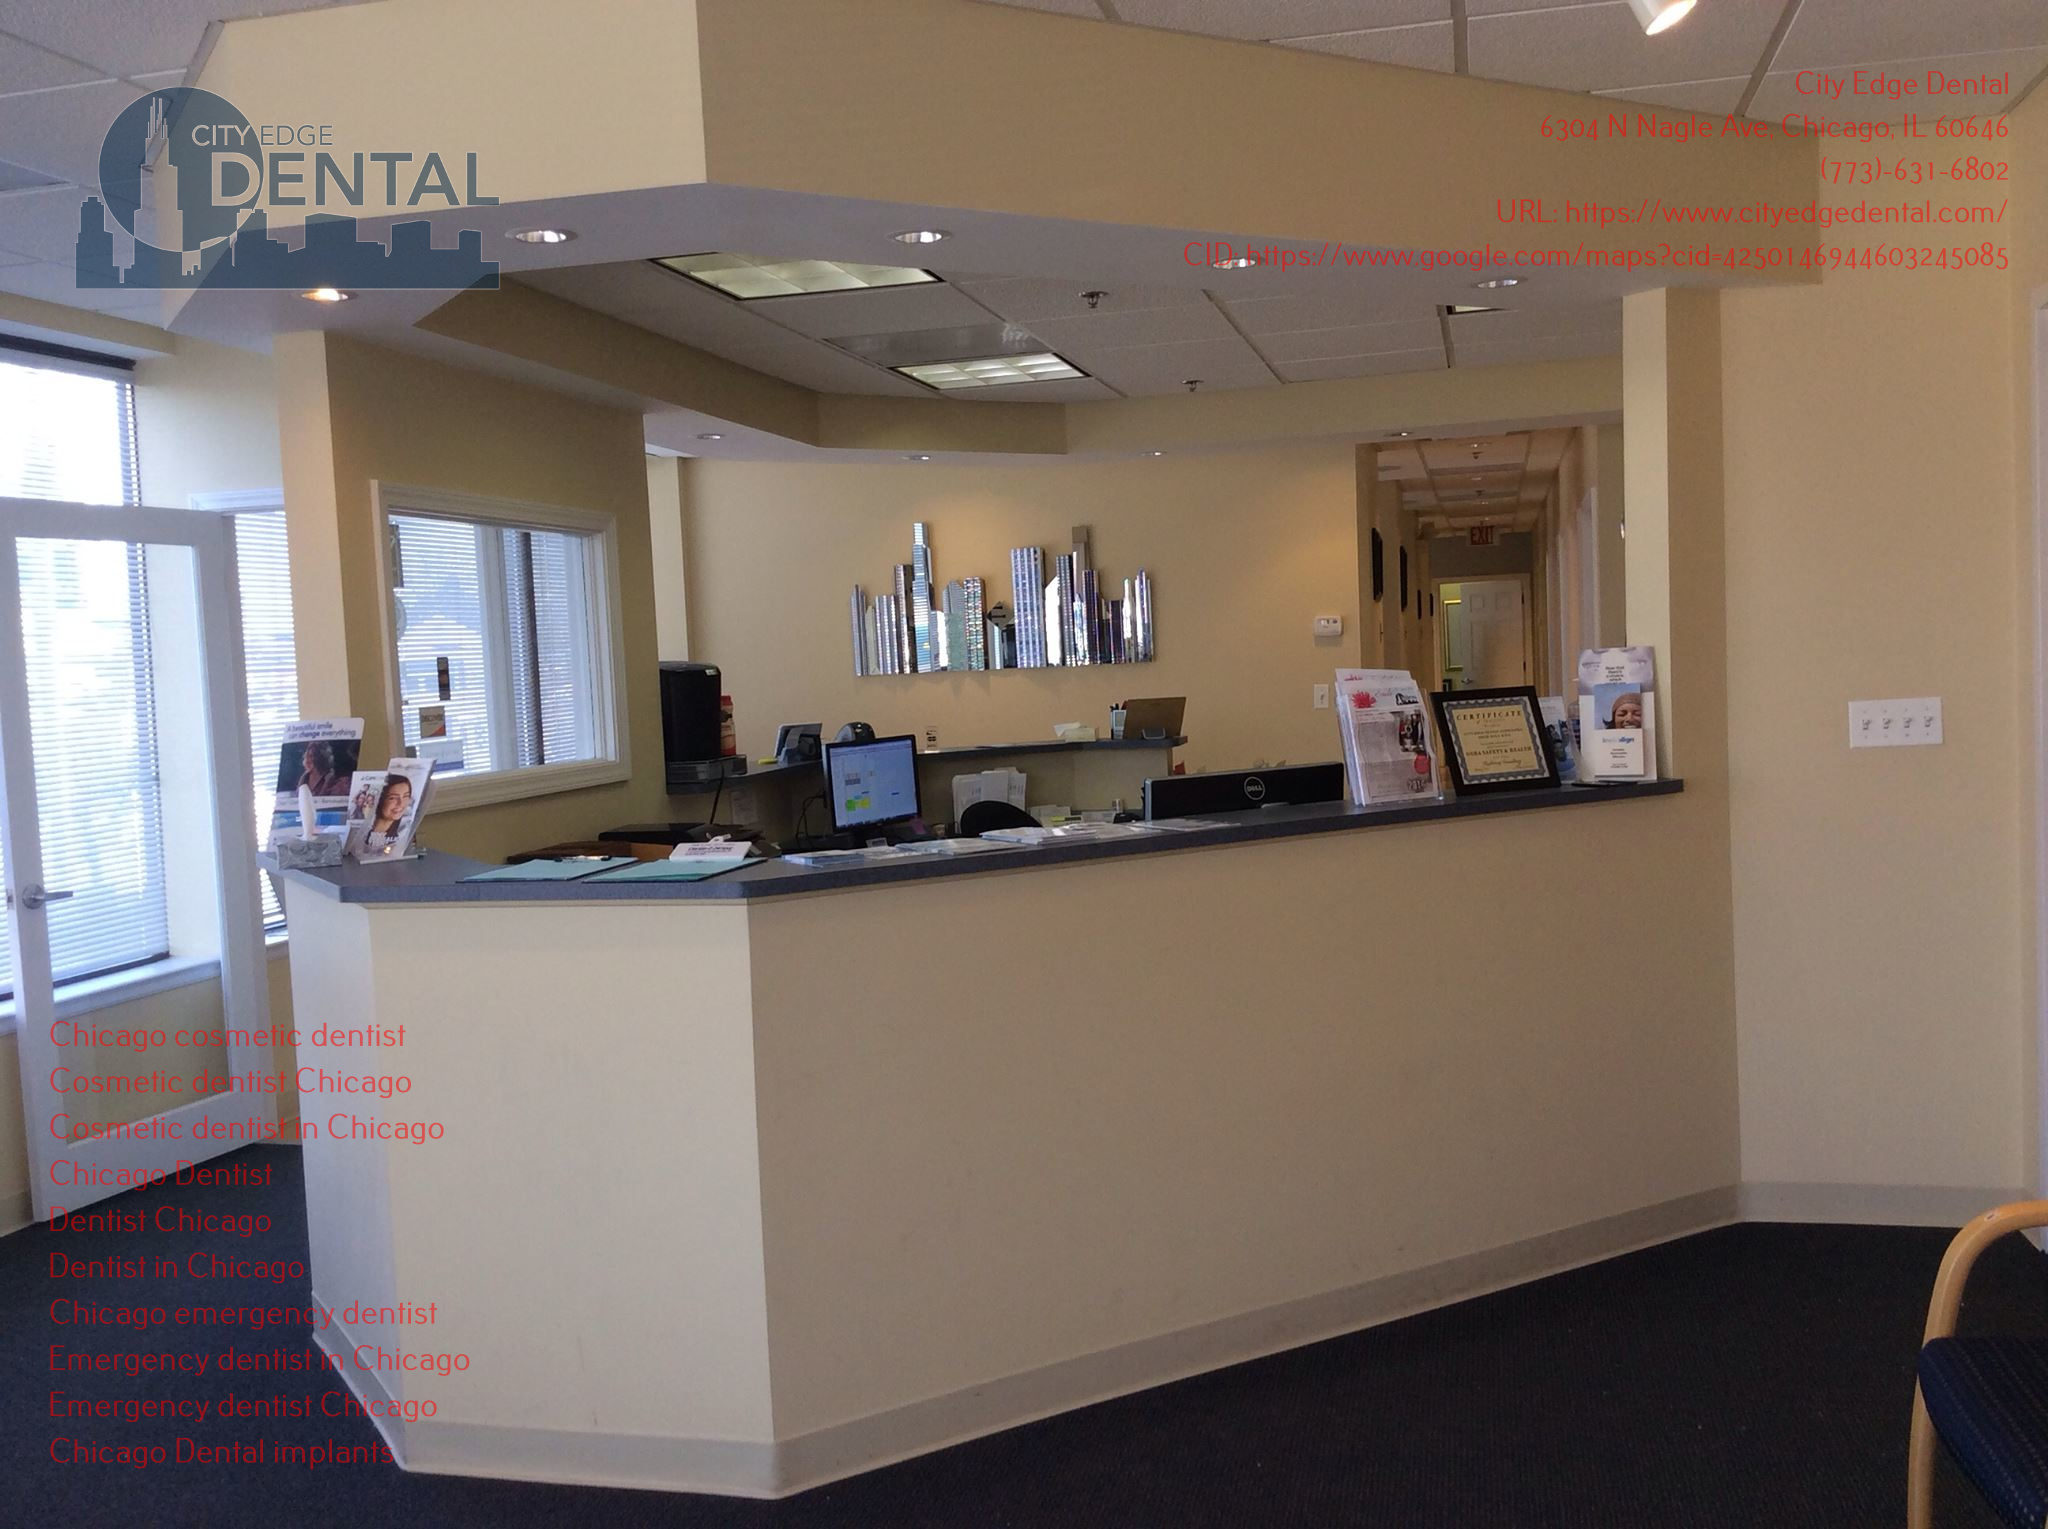 City Edge Dental Announces the Availability of Emergency and Walk-In Dental Services